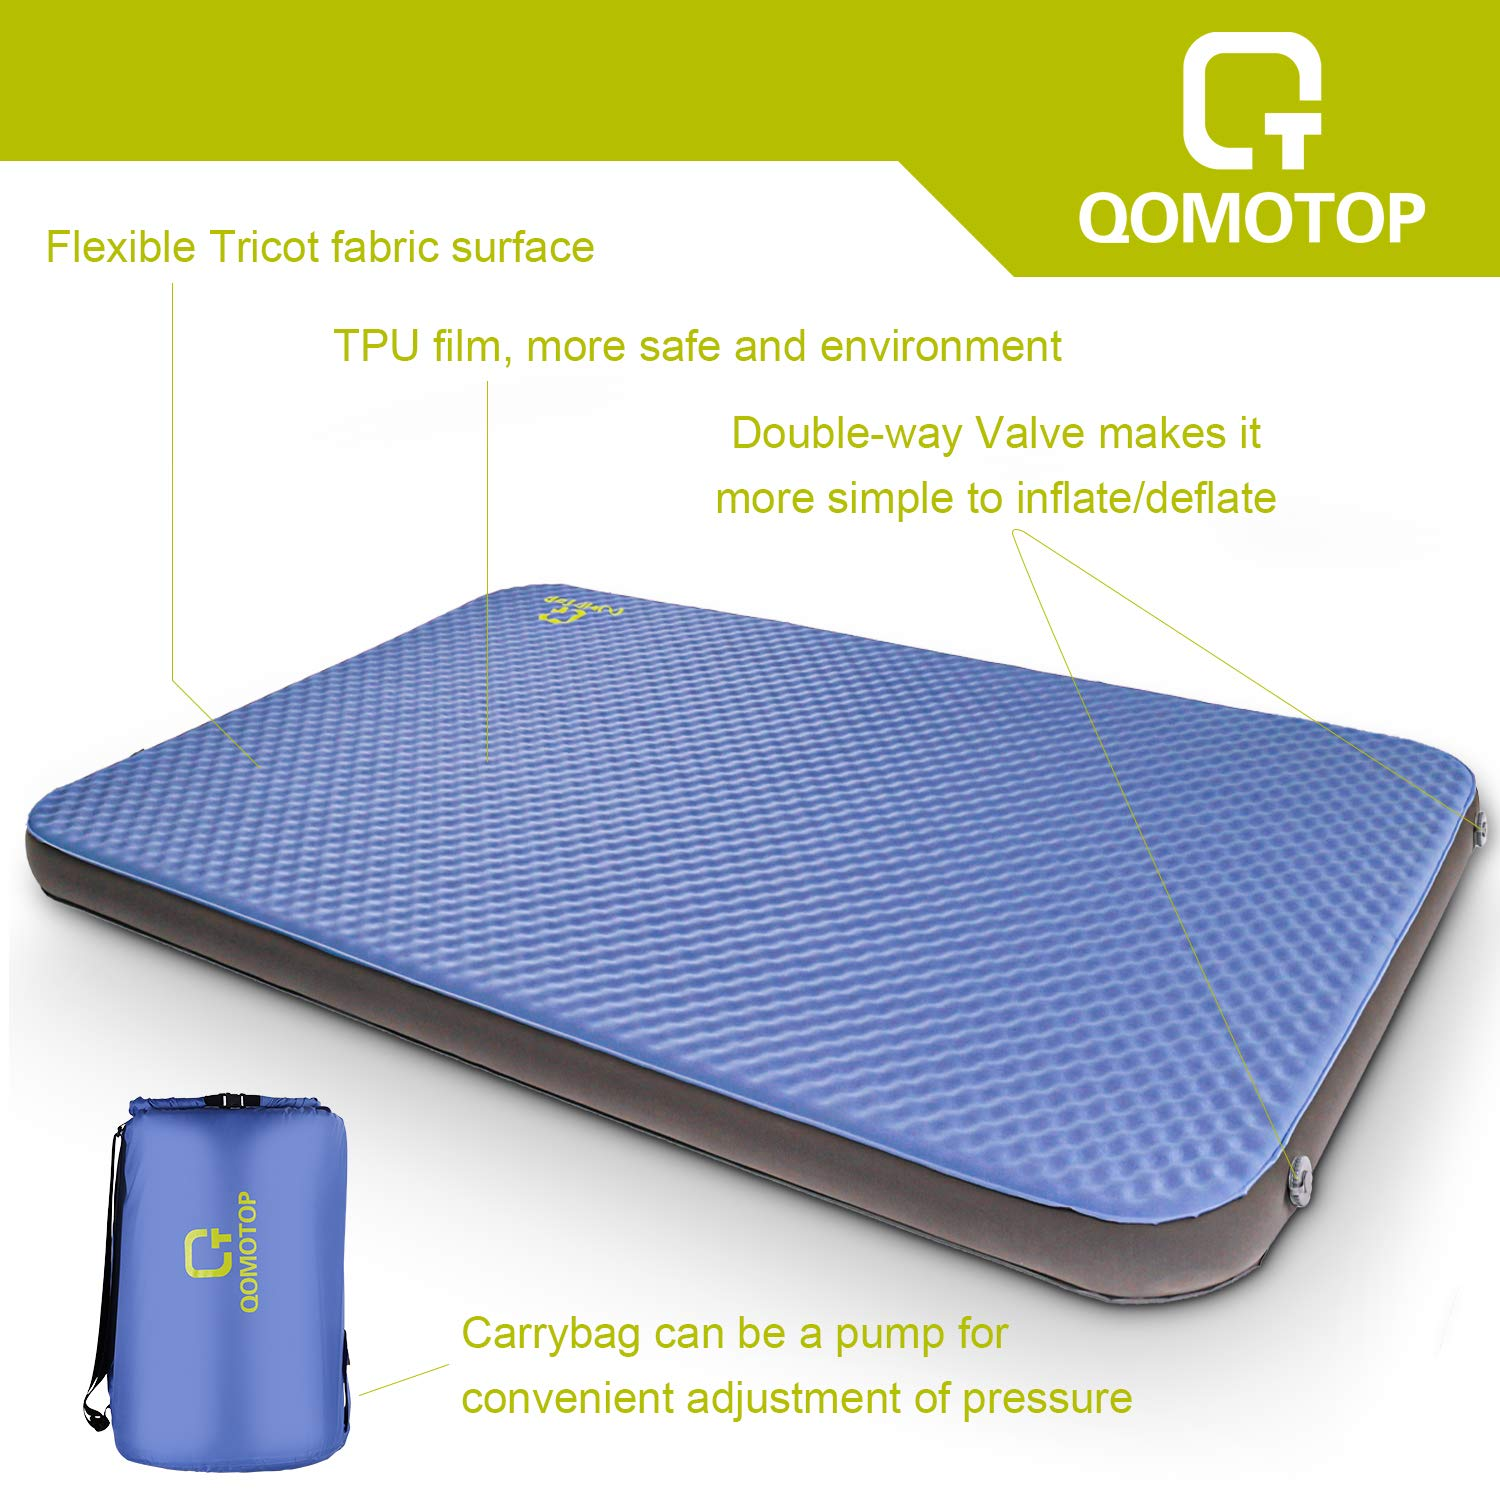 OT QOMOTOP Self Inflating Sleeping Pad 80in x 52in x 4in Thick Camping Pad PU Foam 24h Without Leaks Suitable for 2 People Lightweight 13.6lbs Level 3 Waterproof Travel Bag QTSID2